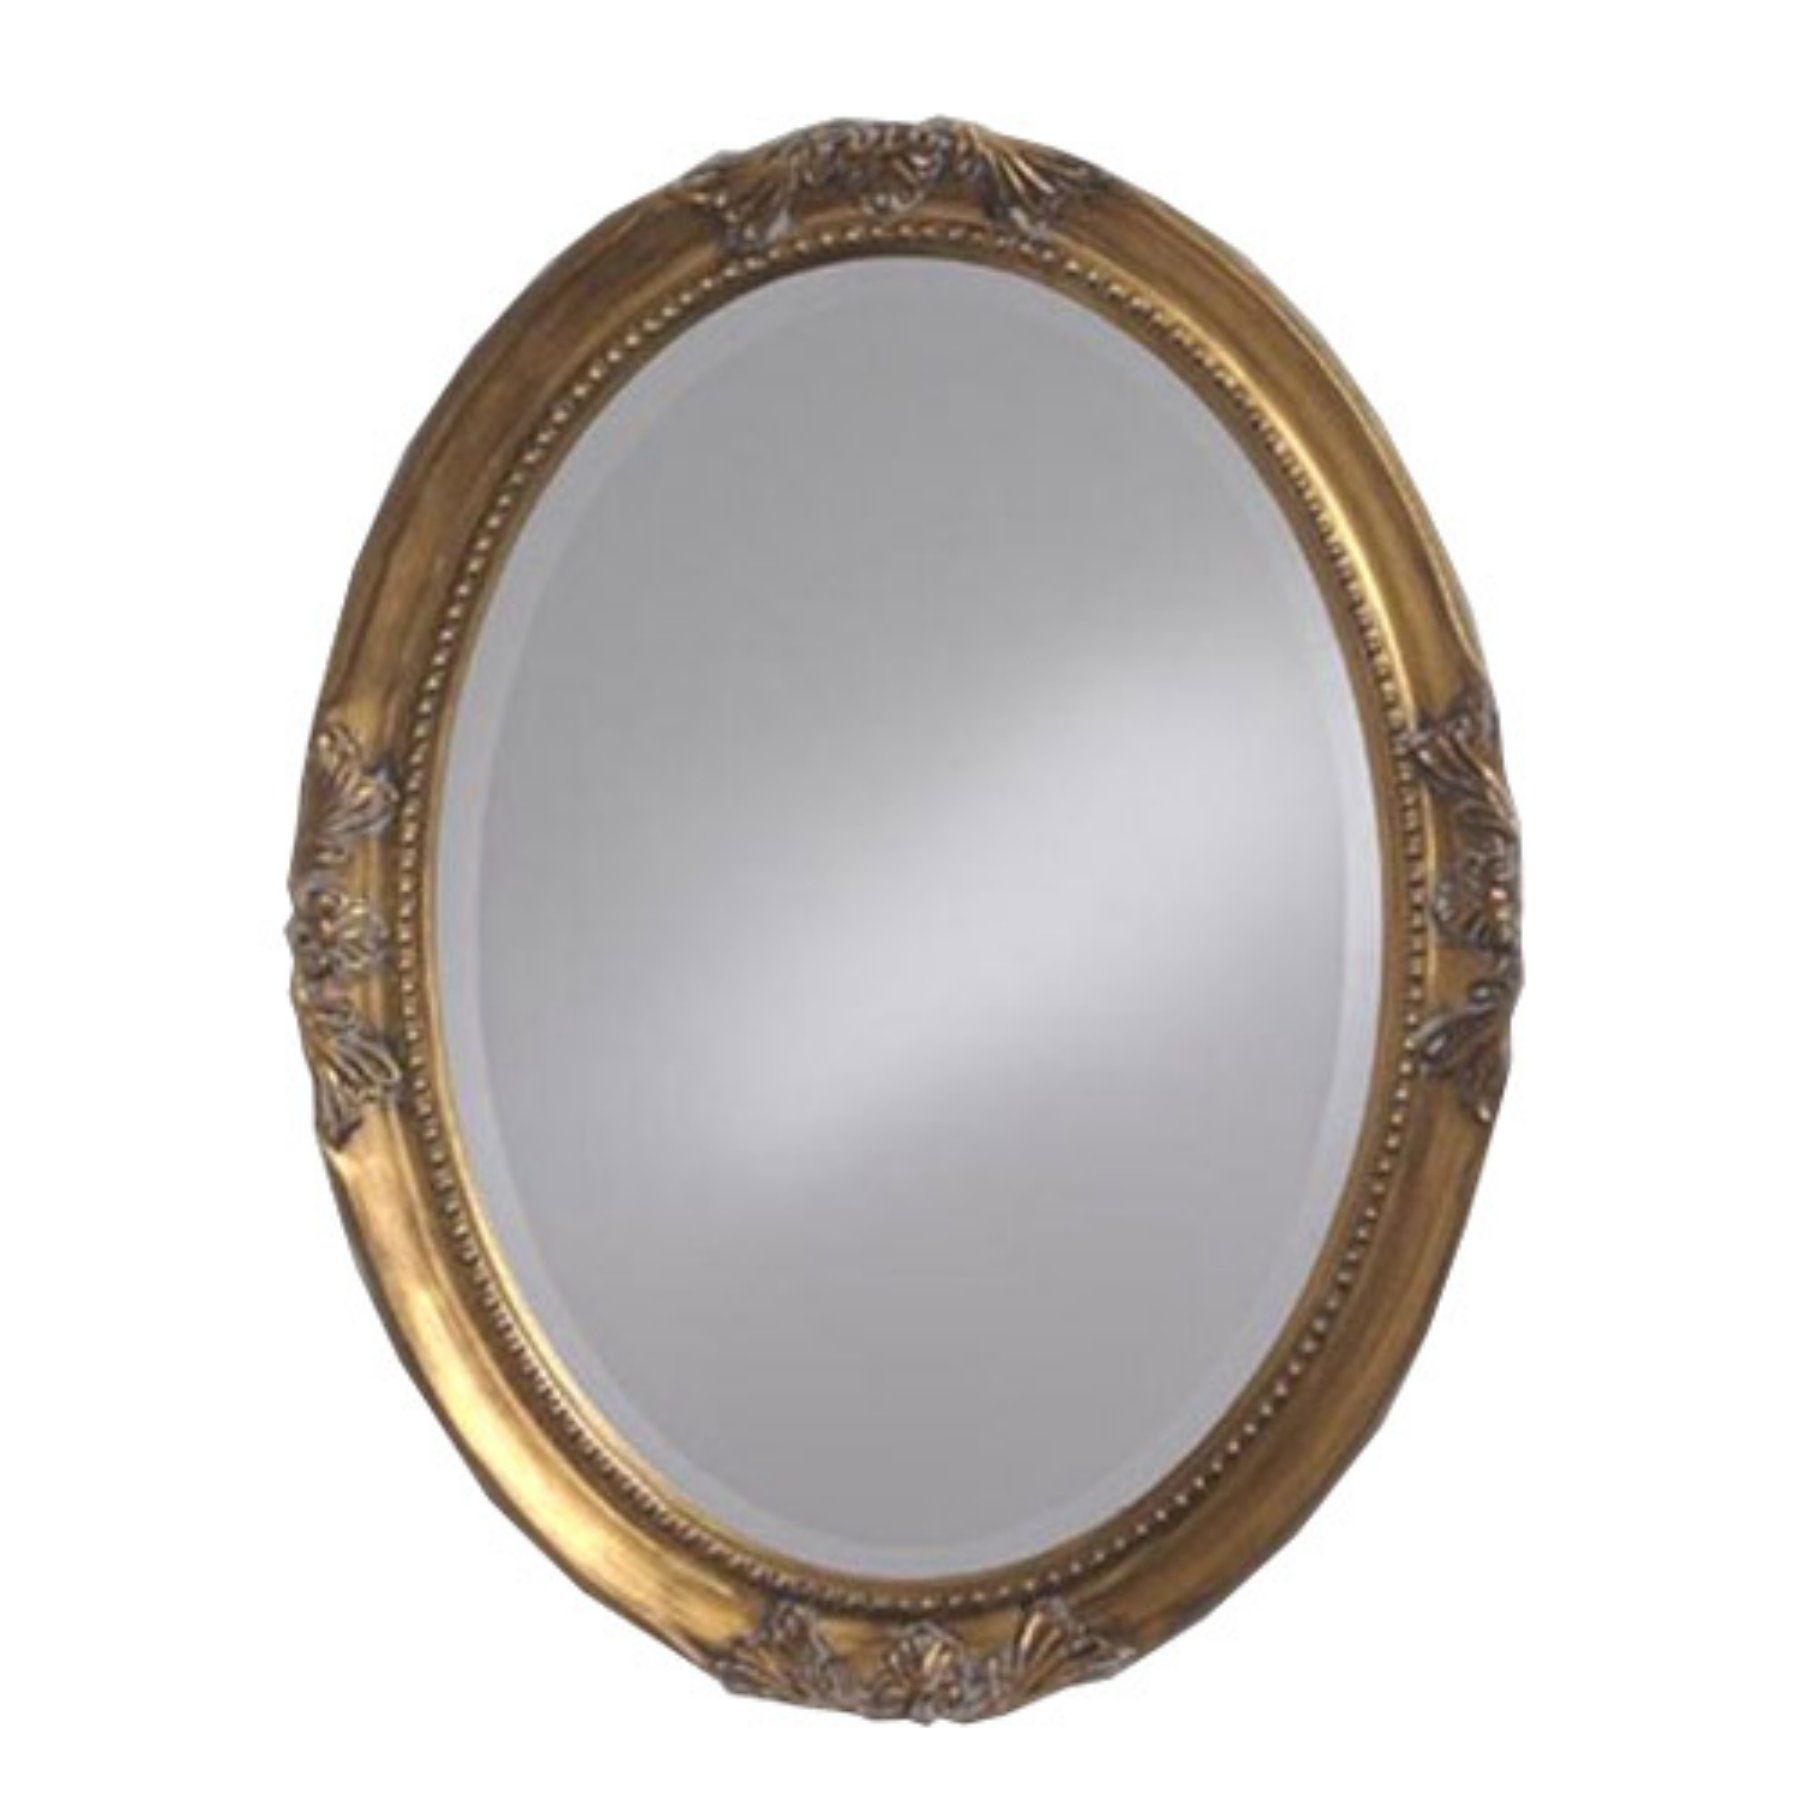 Elizabeth Austin Queen Anne Oval Vanity Mirror 25W X 33H In. - 4015